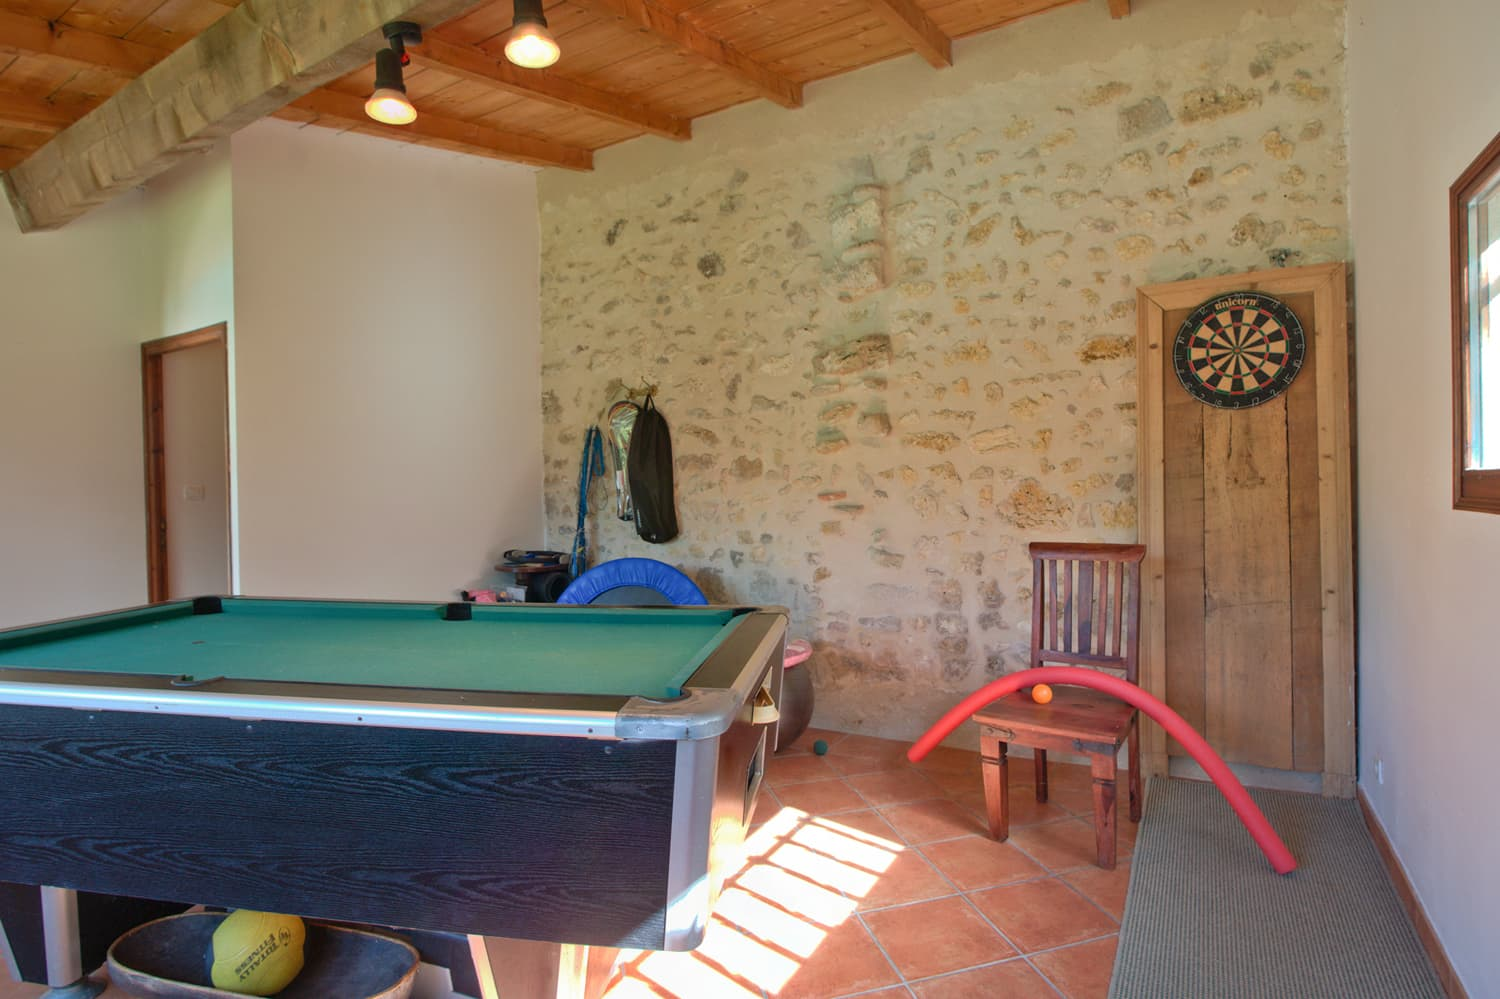 Poolside games room with pool table